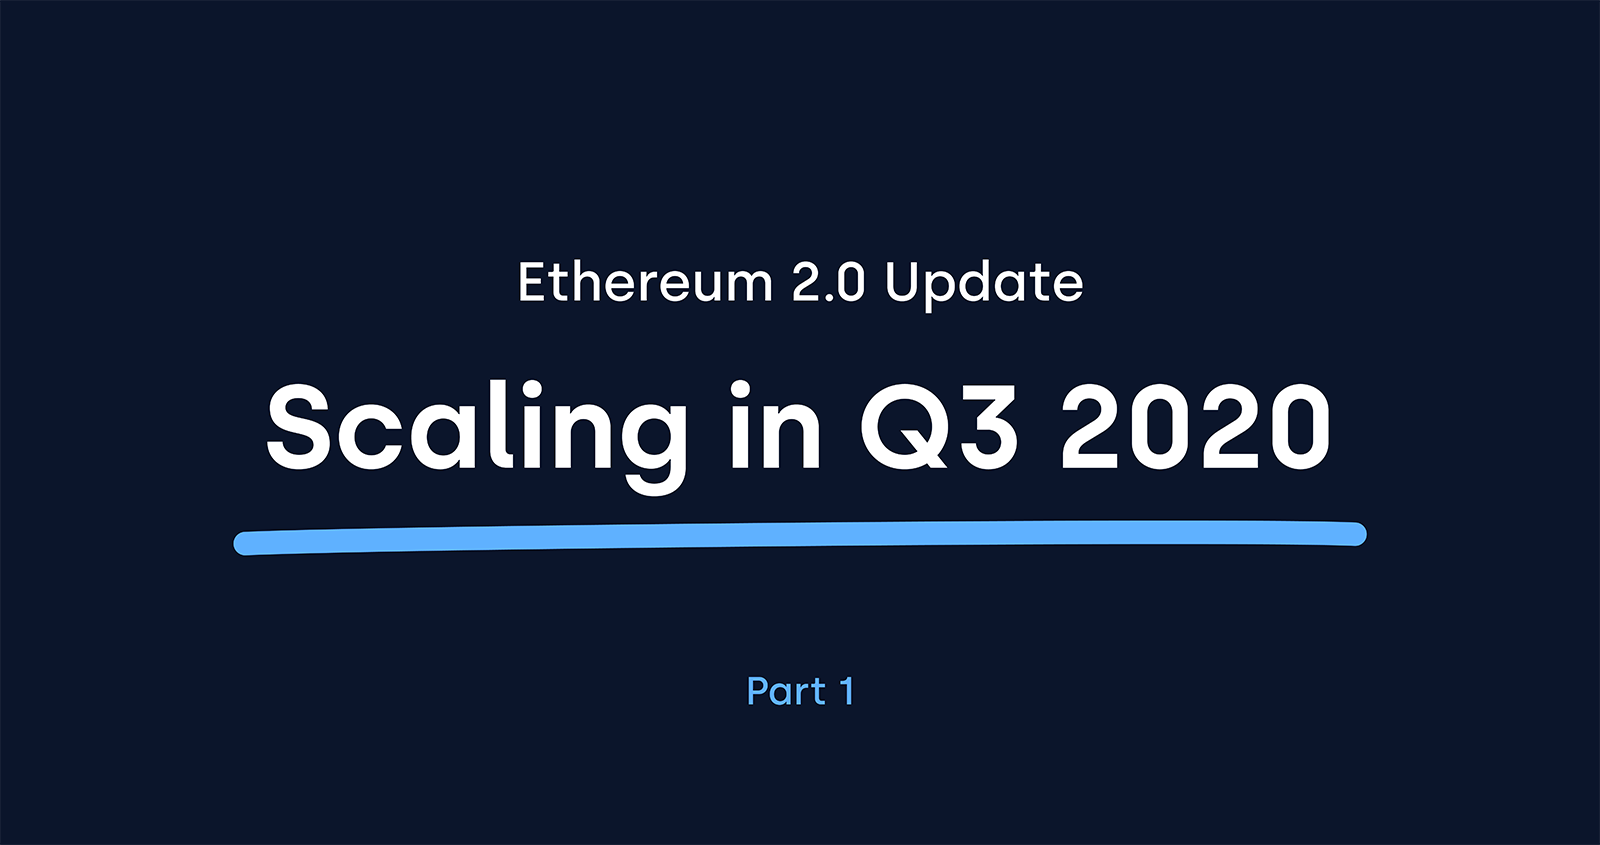 Ethereum 2.0 Update, ETH2, Ethereum Serenity update from OKCoin cryptocurrency exchange